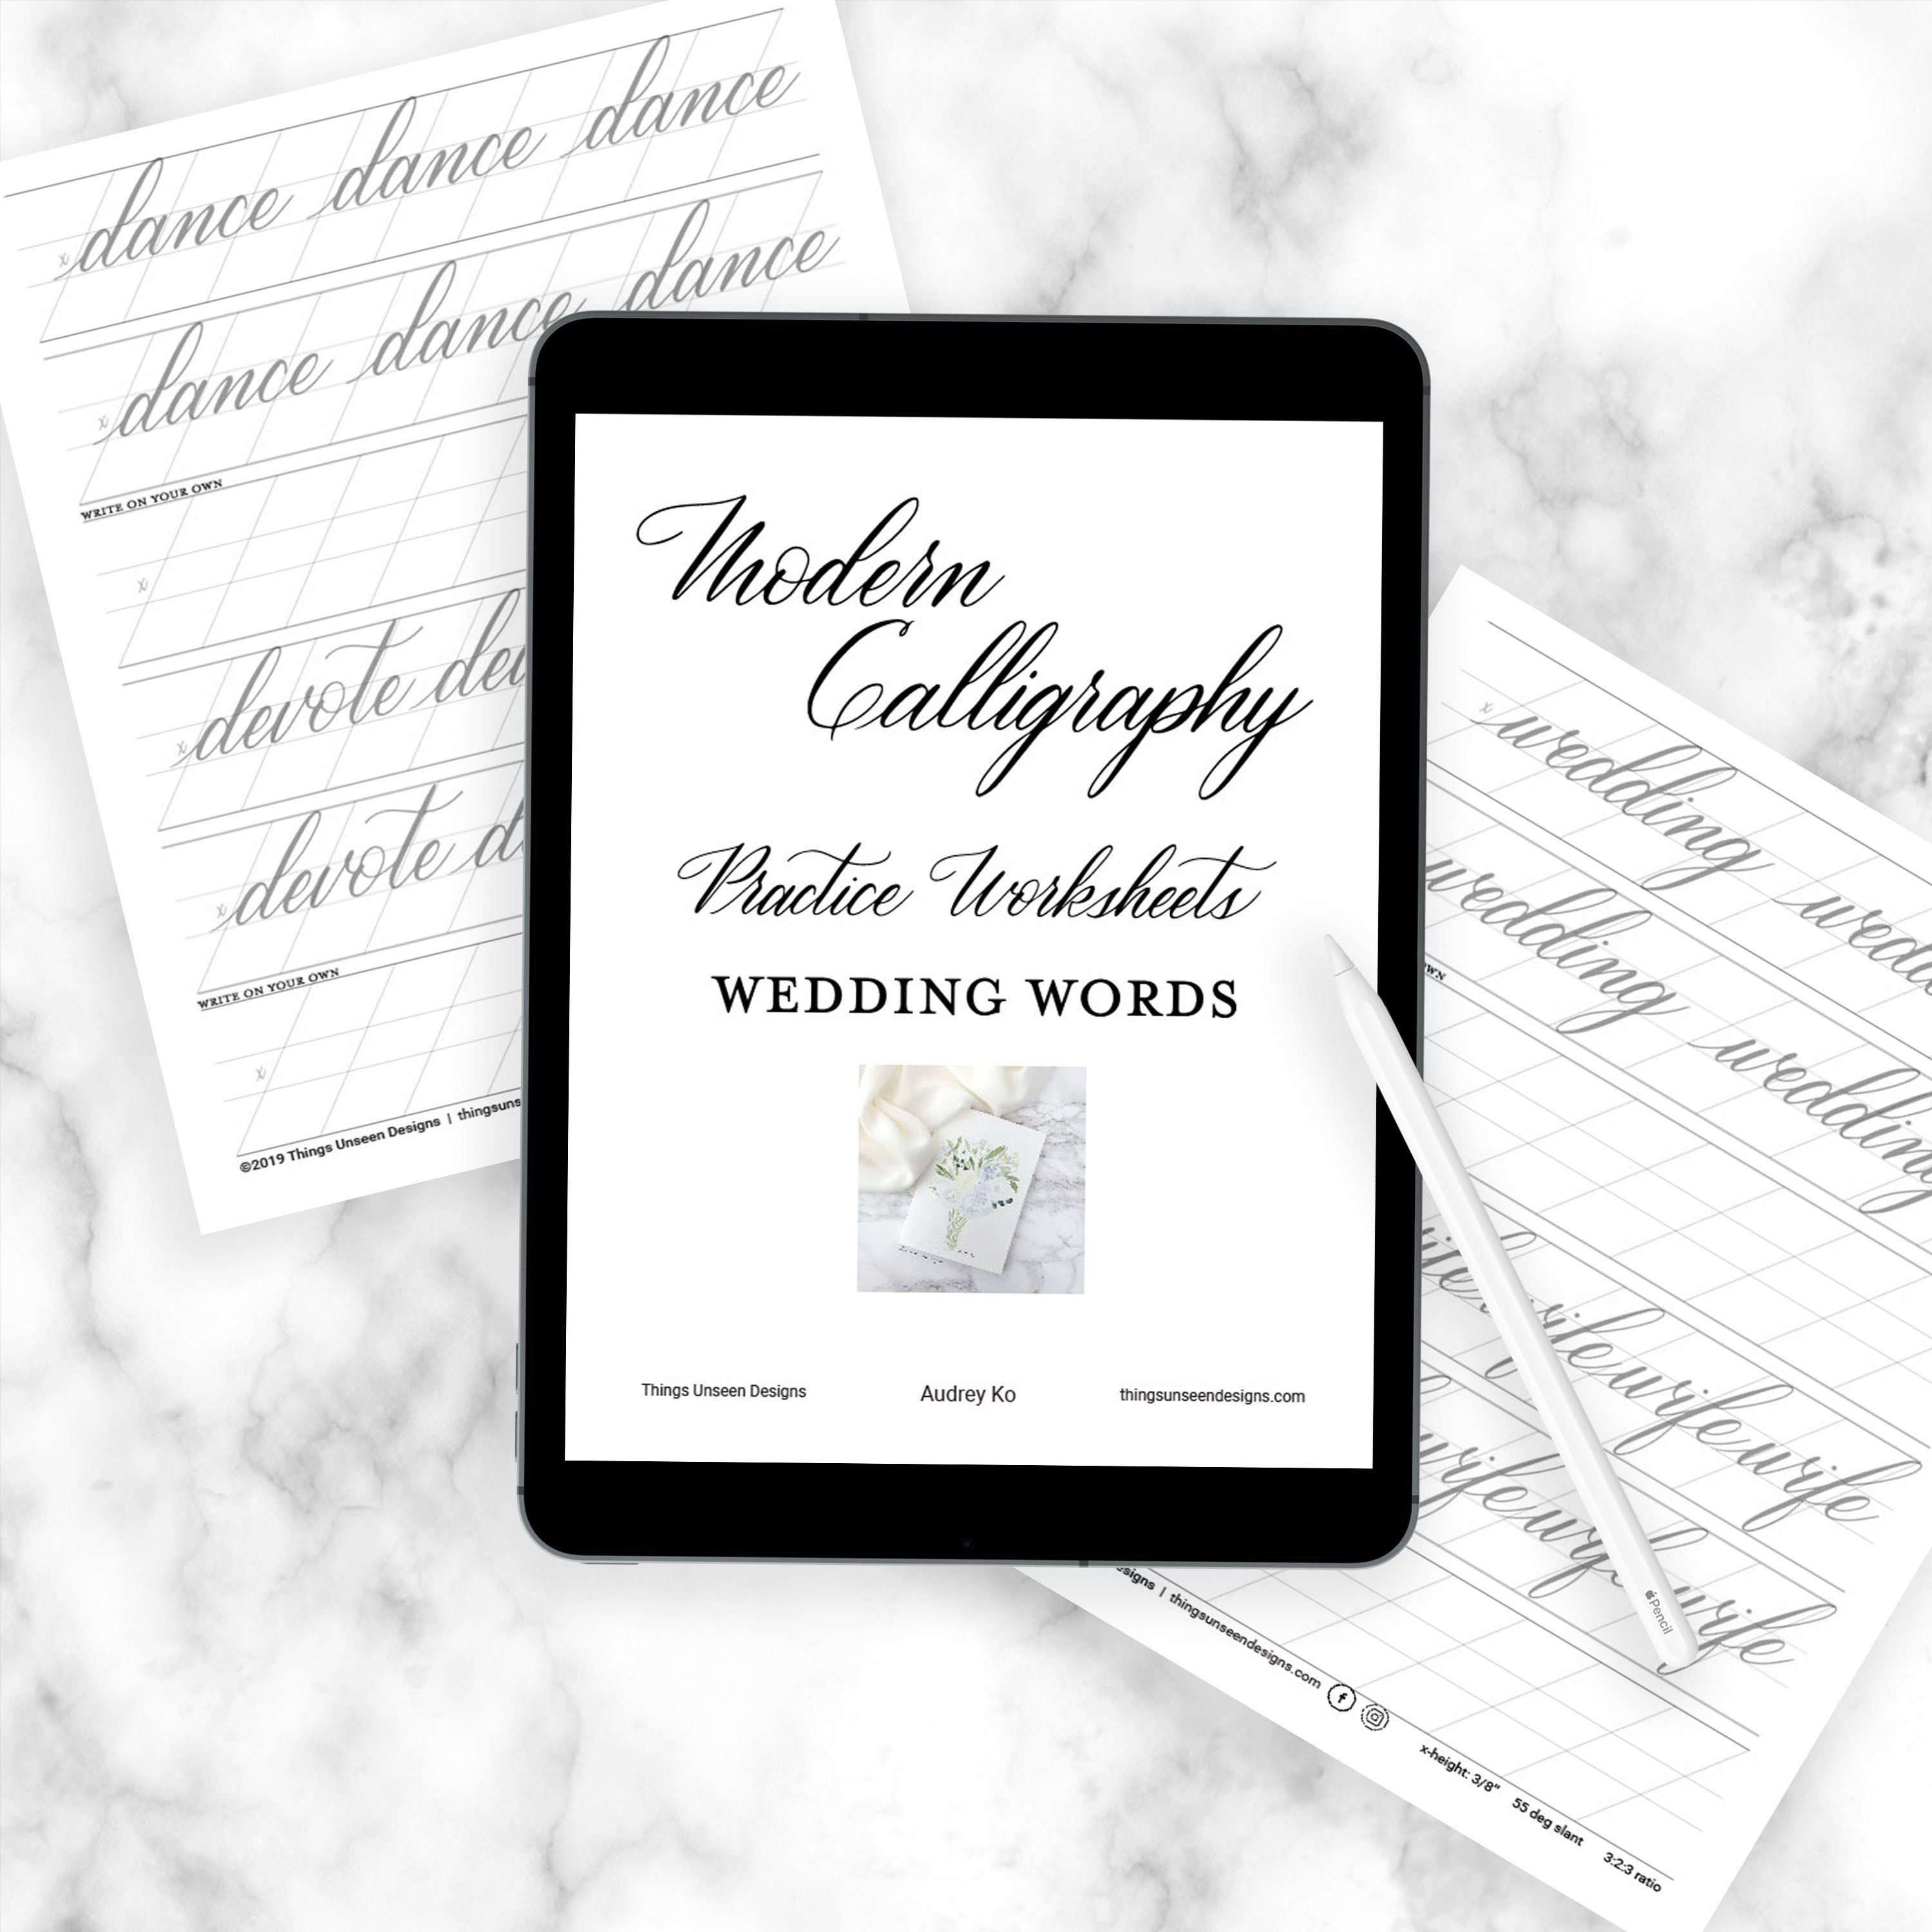 Modern Calligraphy Worksheets Wedding Words